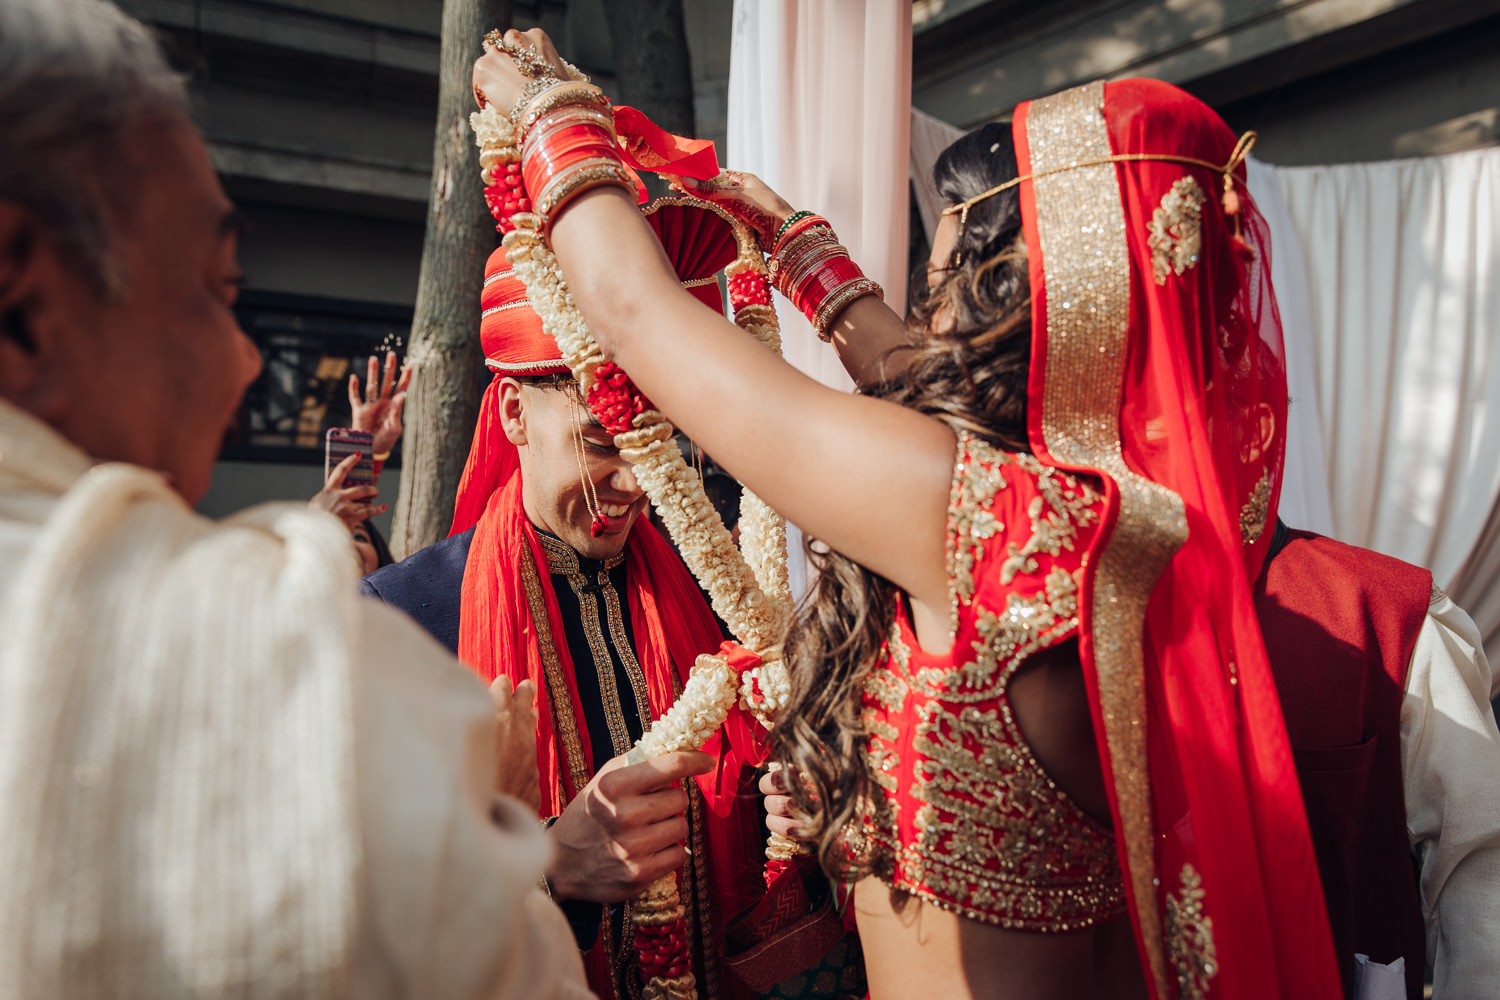 Toronto Liberty Grand Courtyard Hindu Wedding